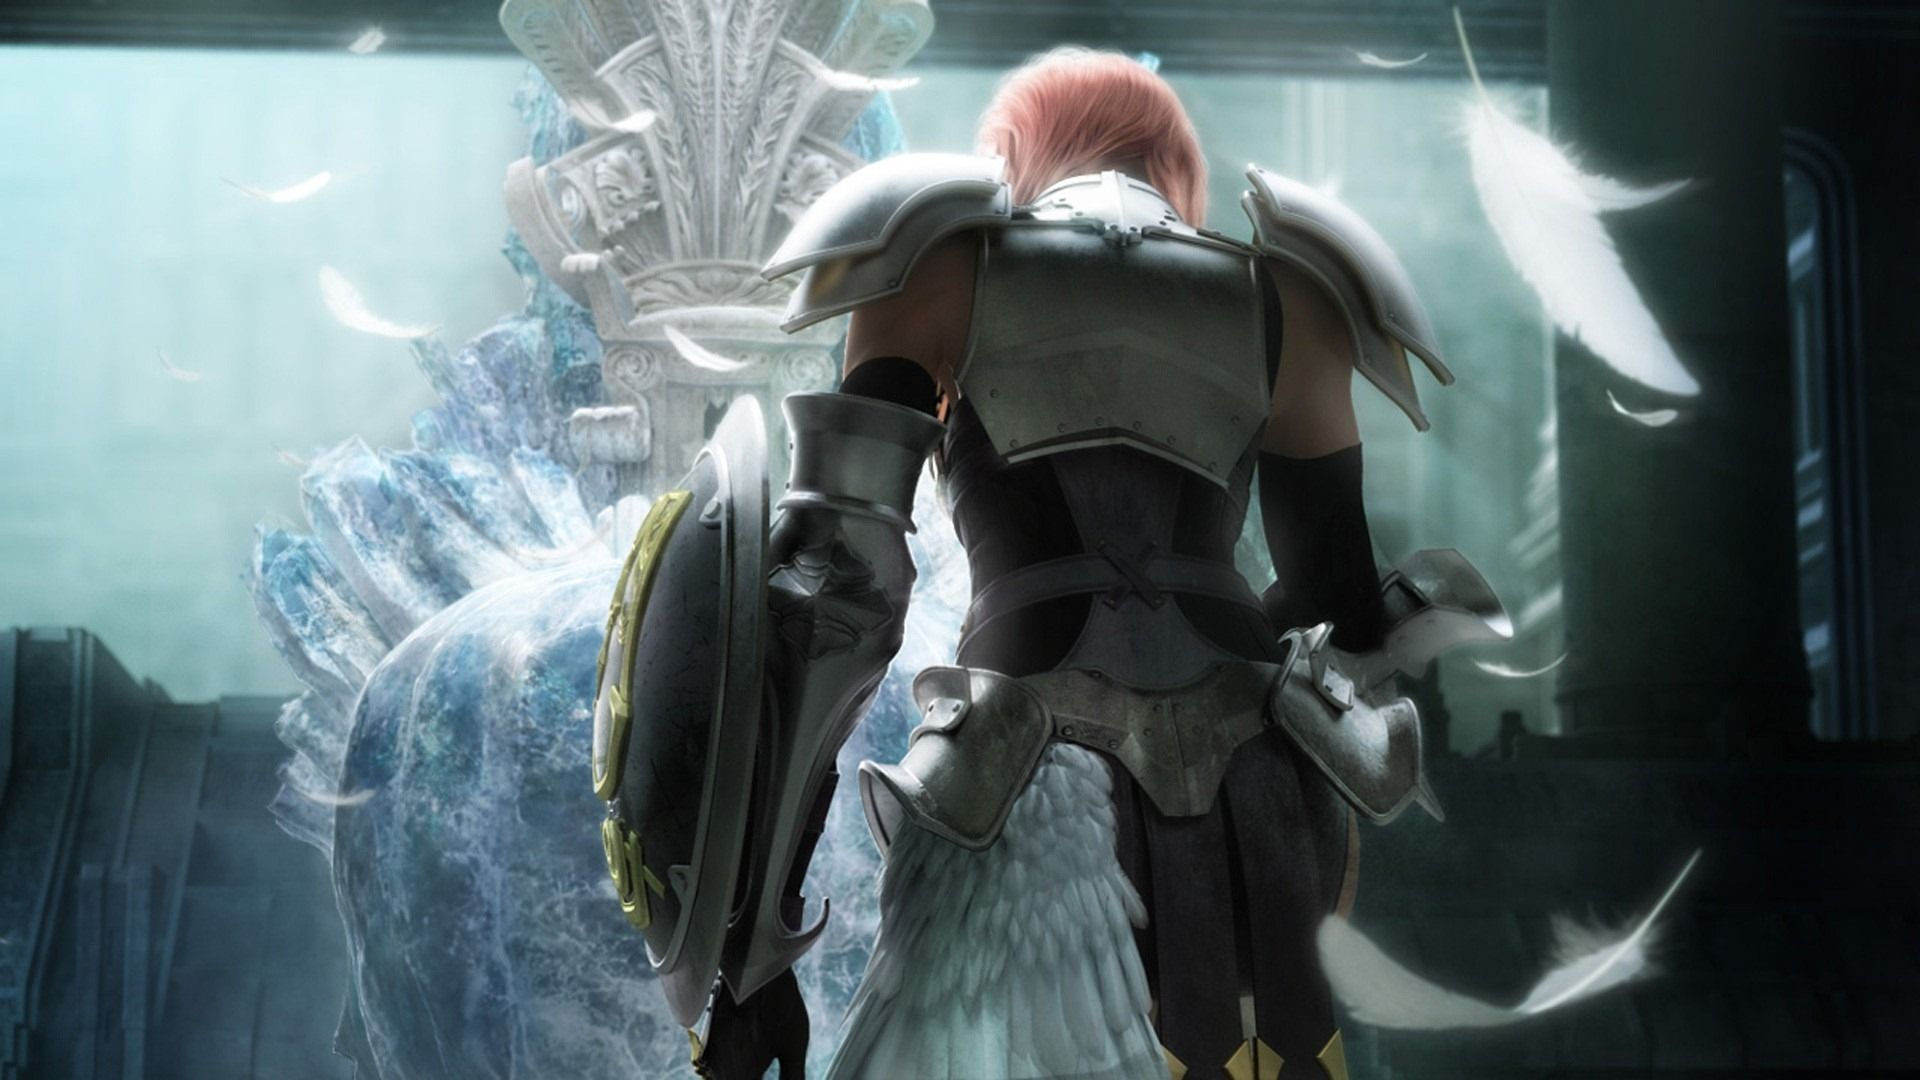 final fantasy xiii, characters, back - http://www.wallpapers4u.org/final-fantasy-xiii-characters-back/